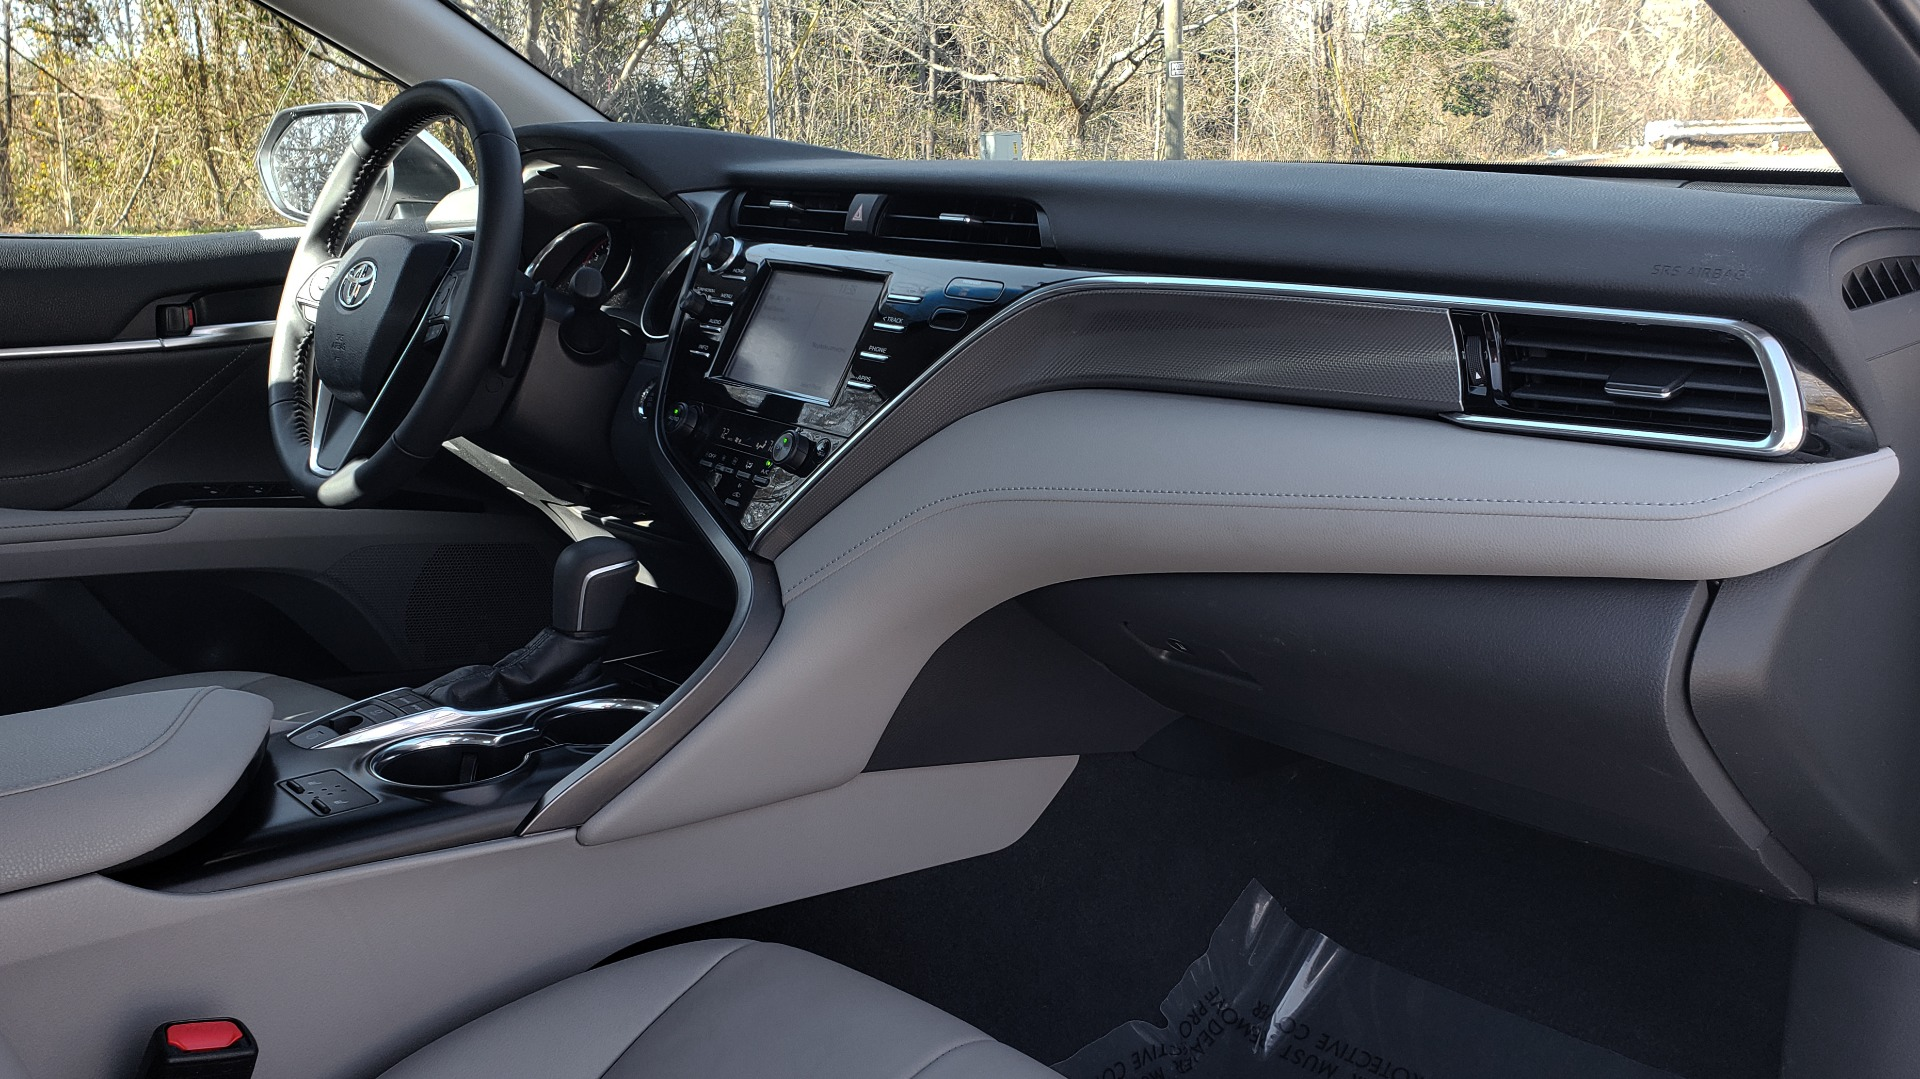 Used 2018 Toyota CAMRY XSE 2.5L SEDAN / 8-SPD AUTO / PANO-ROOF / 19IN WHEELS for sale $22,995 at Formula Imports in Charlotte NC 28227 65